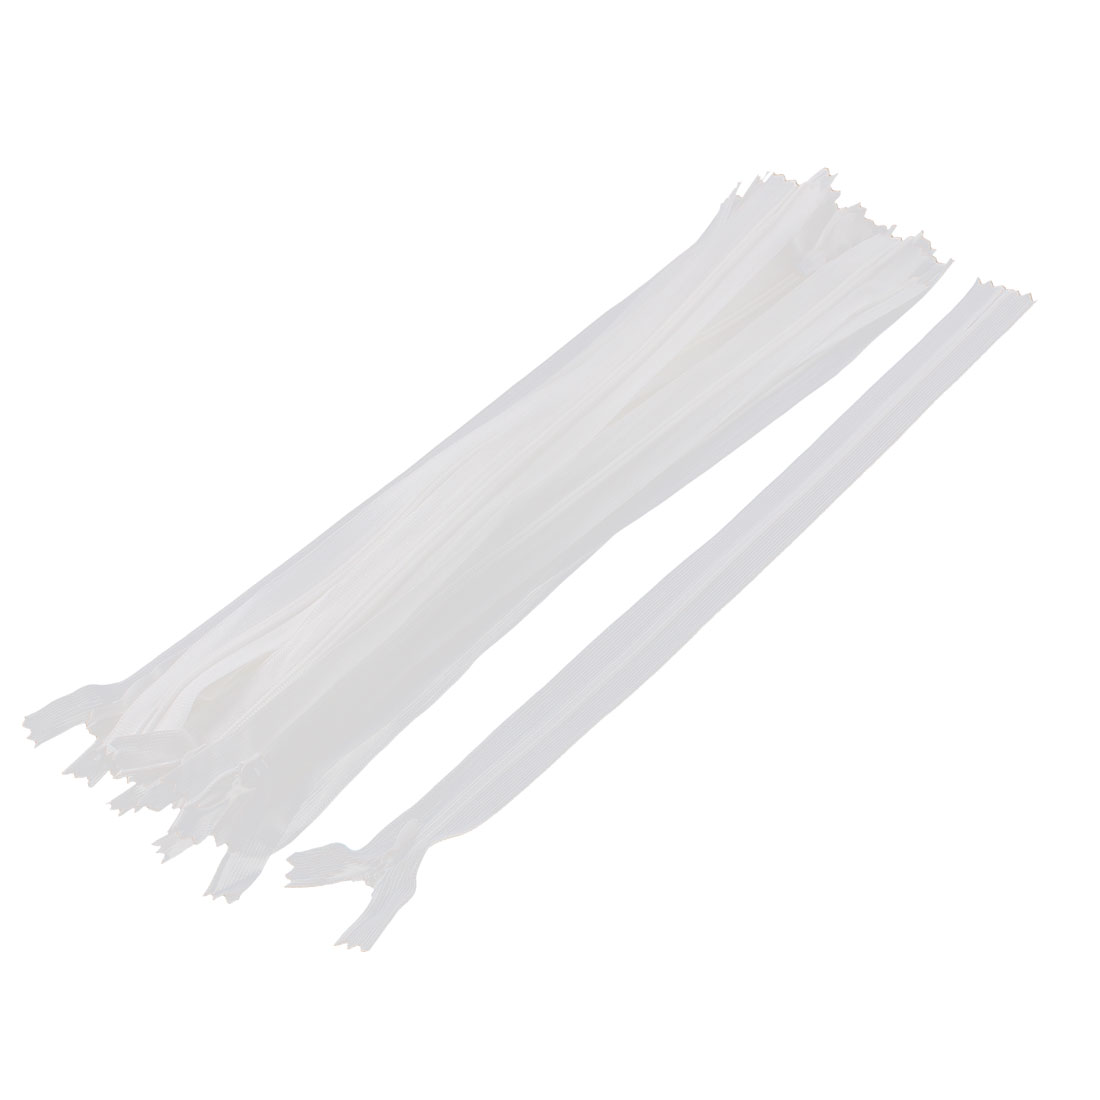 20 Pcs White 30cm 12-inch Nylon Zippers for Doll Clothes